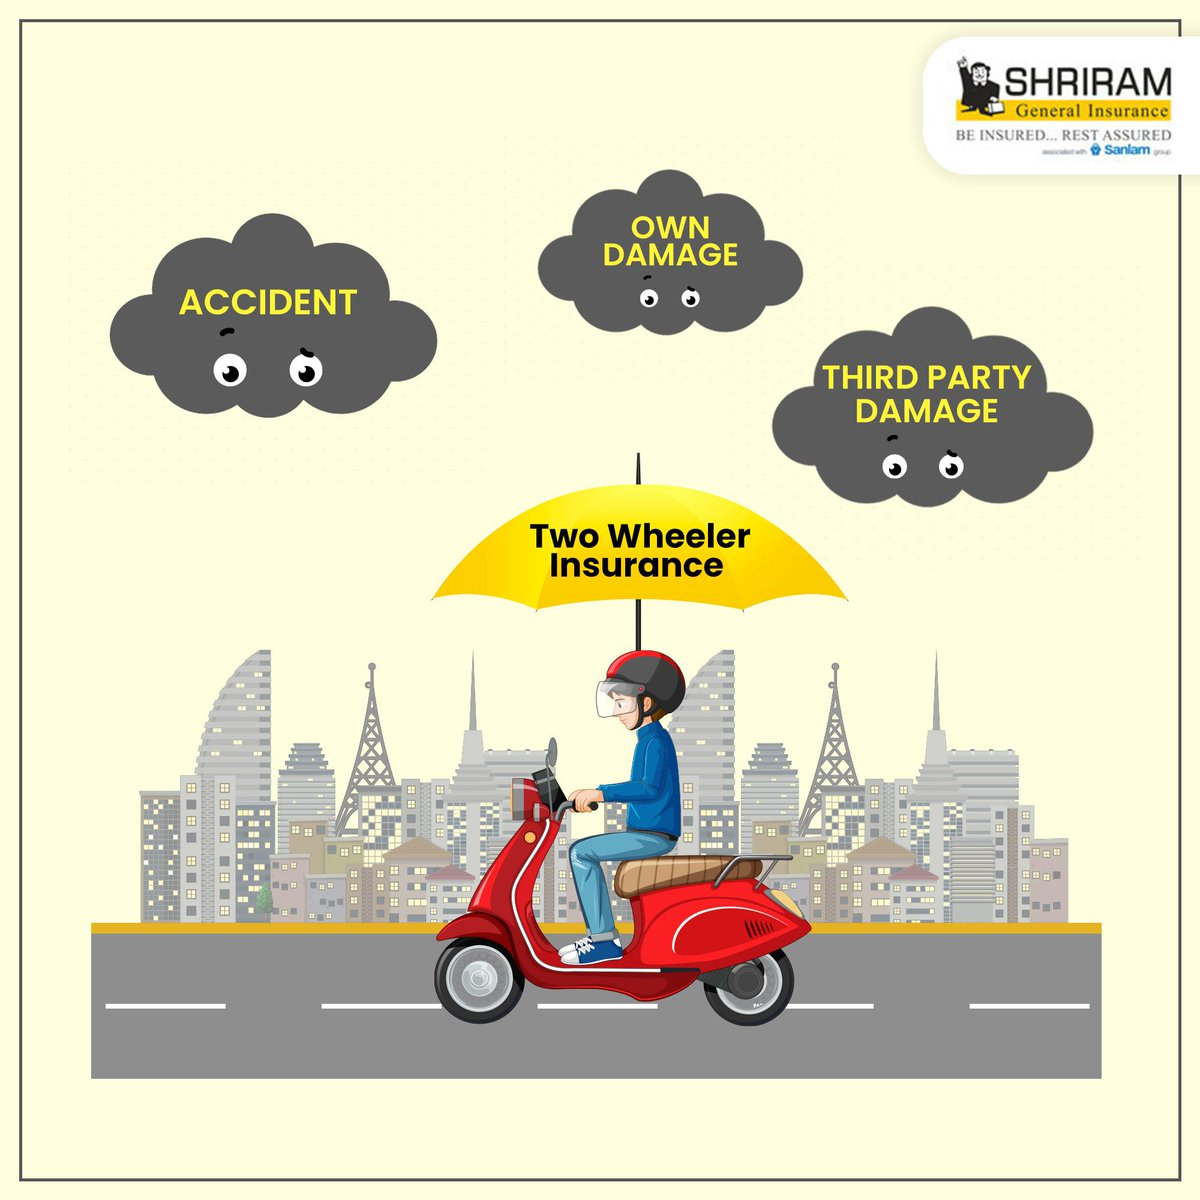 Your two-wheeler takes you to places wherever you want to go. Keep it safe with two-wheeler insurance policy and ensure your financial safety here: ... #ShriramGI #SGI #TwoWheelerInsurance #buytwowheelerinsurancepolicy #staysafe #stayprotected